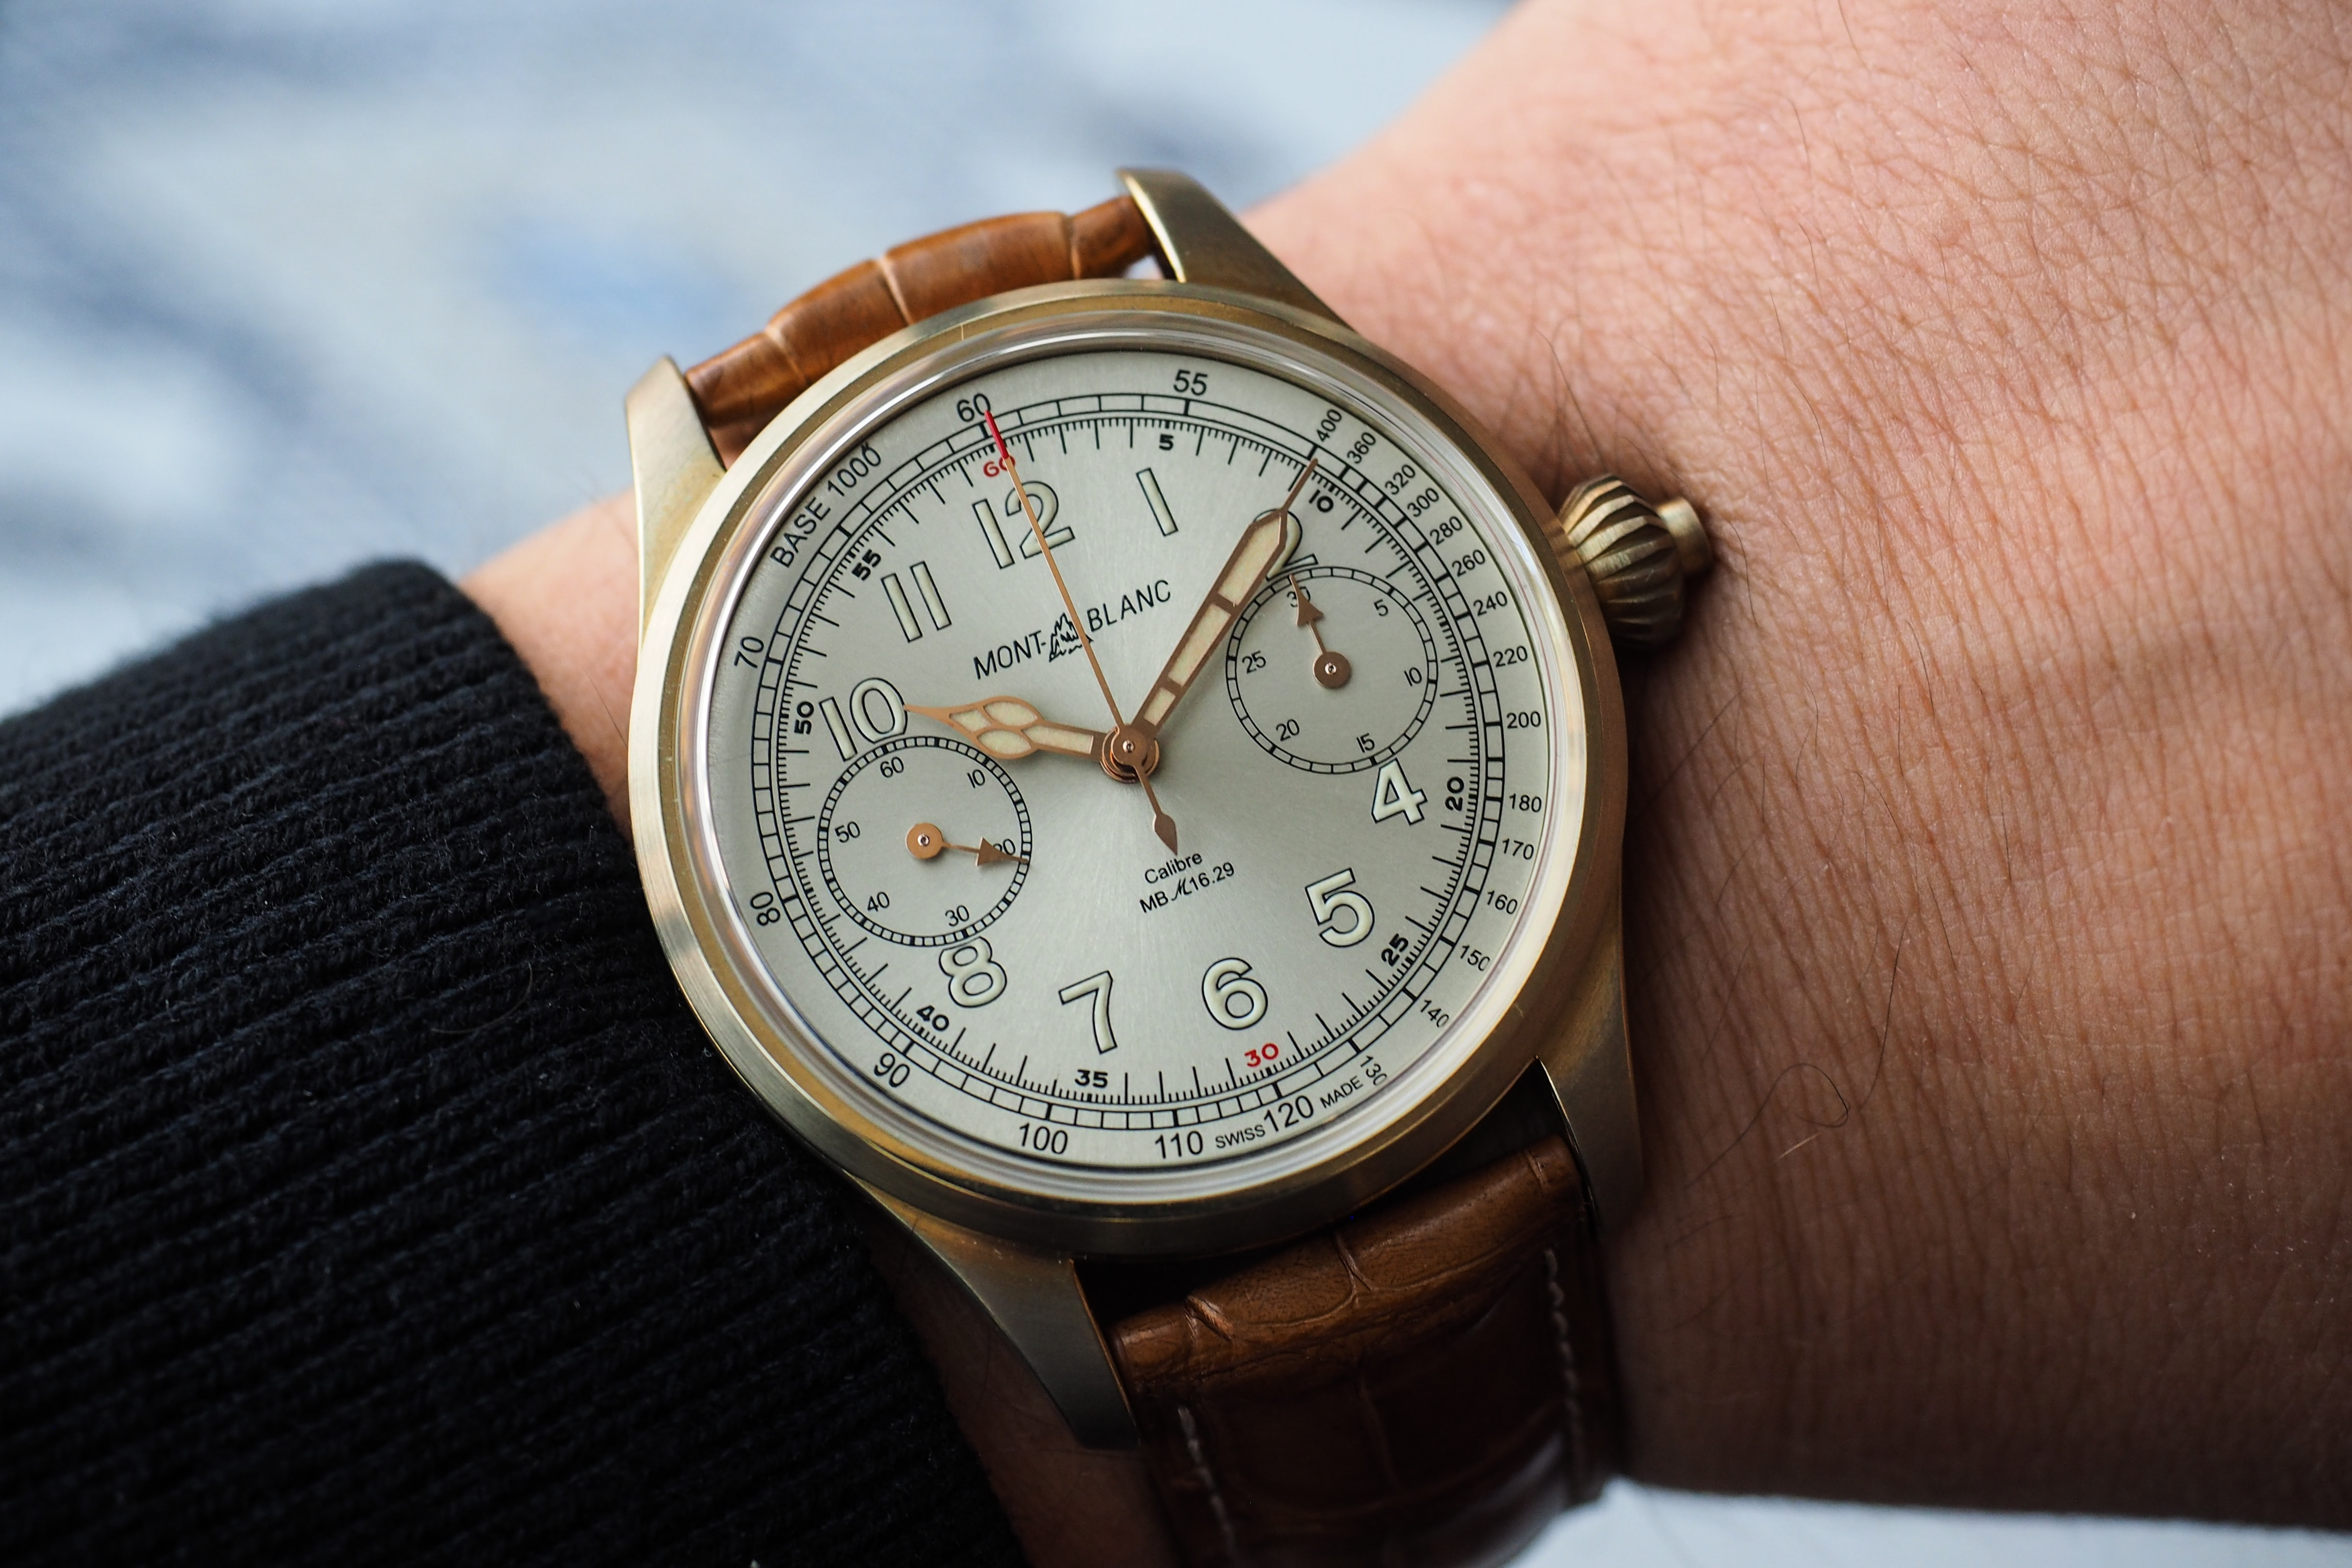 The 1858 Chronograph Tachymeter Limited Edition wrist shot Introducing: For SIHH 2017, Montblanc Announces The 1858 Chronograph Tachymeter Limited Edition In Bronze (Live Pics, Pricing) Introducing: For SIHH 2017, Montblanc Announces The 1858 Chronograph Tachymeter Limited Edition In Bronze (Live Pics, Pricing) PA250525